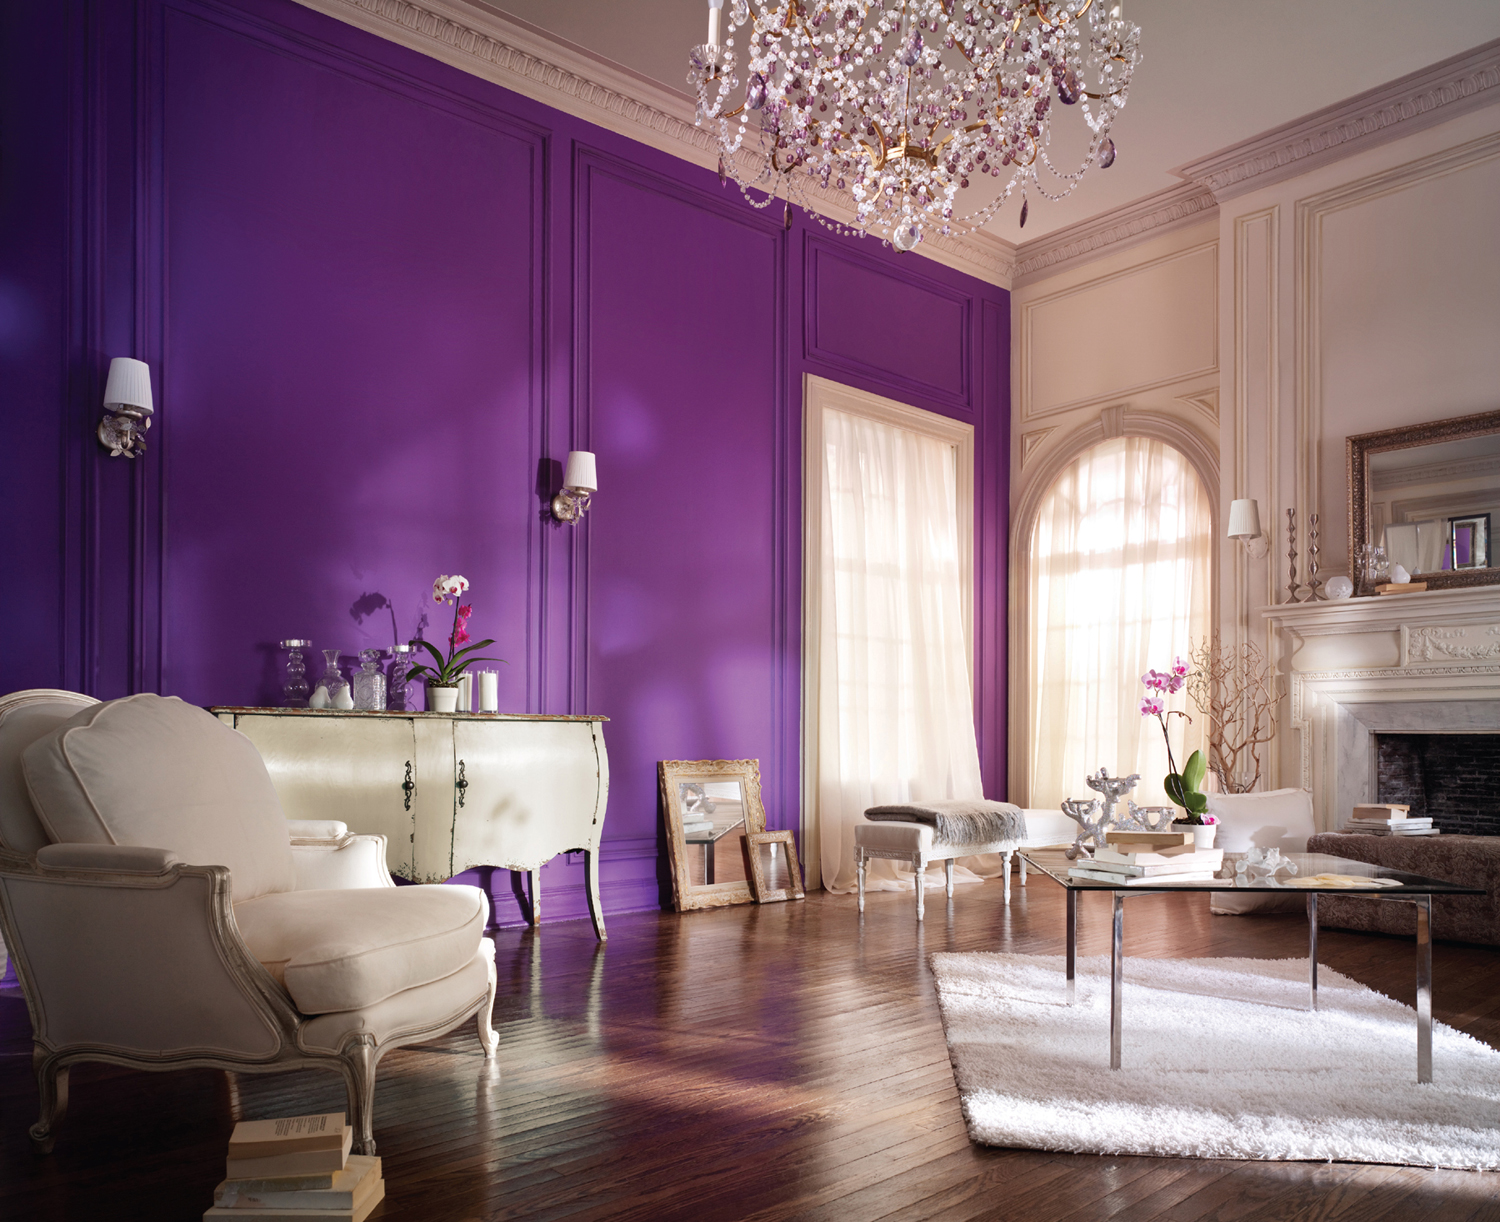 Purple Wall Paint: The Variants | HomesFeed